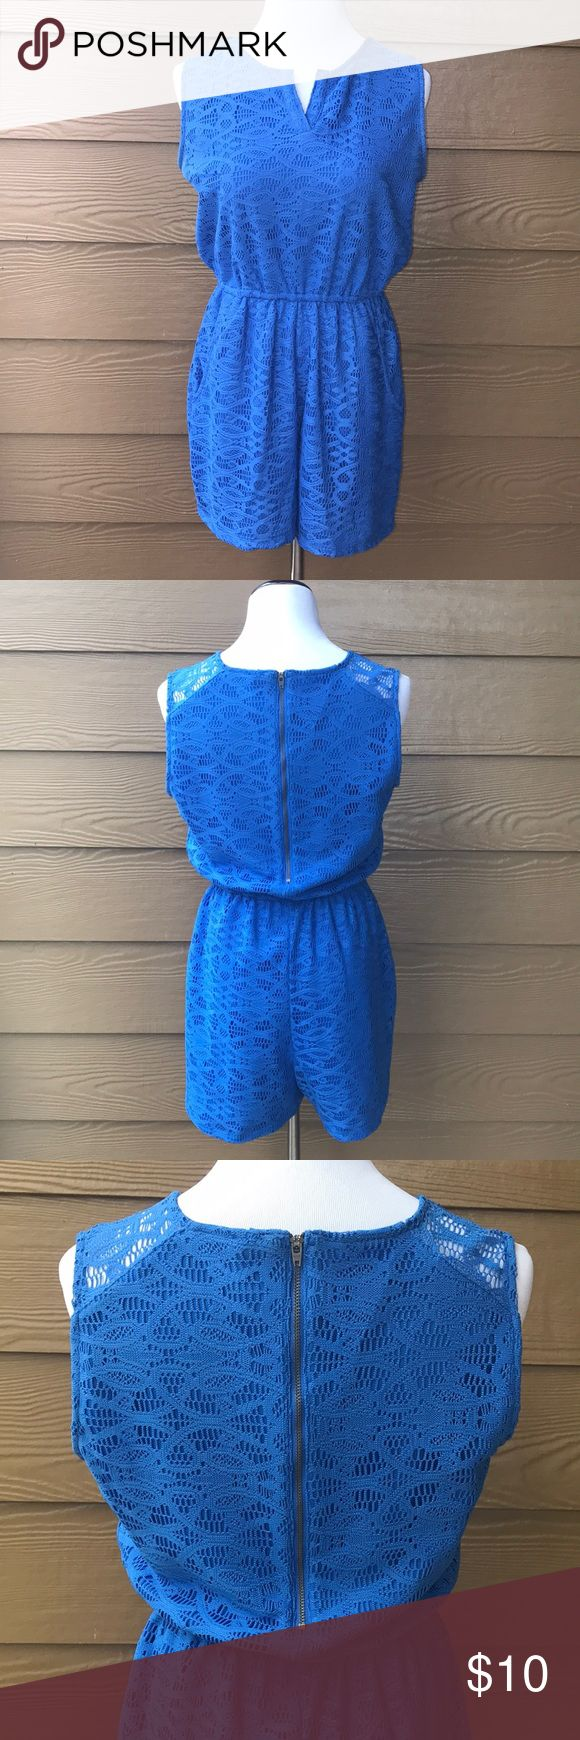 Royal Blue Romper Pockets Crochet Lace V-Neck • Brand: Xhilaration by Target • Size: women's / juniors medium • Material: 100% polyester • Condition: Excellent used condition {no flaws} • V-Neck • Features pockets for extra comfort • Romper with pockets, crochet design, beautiful royal blue Xhilaration Shorts